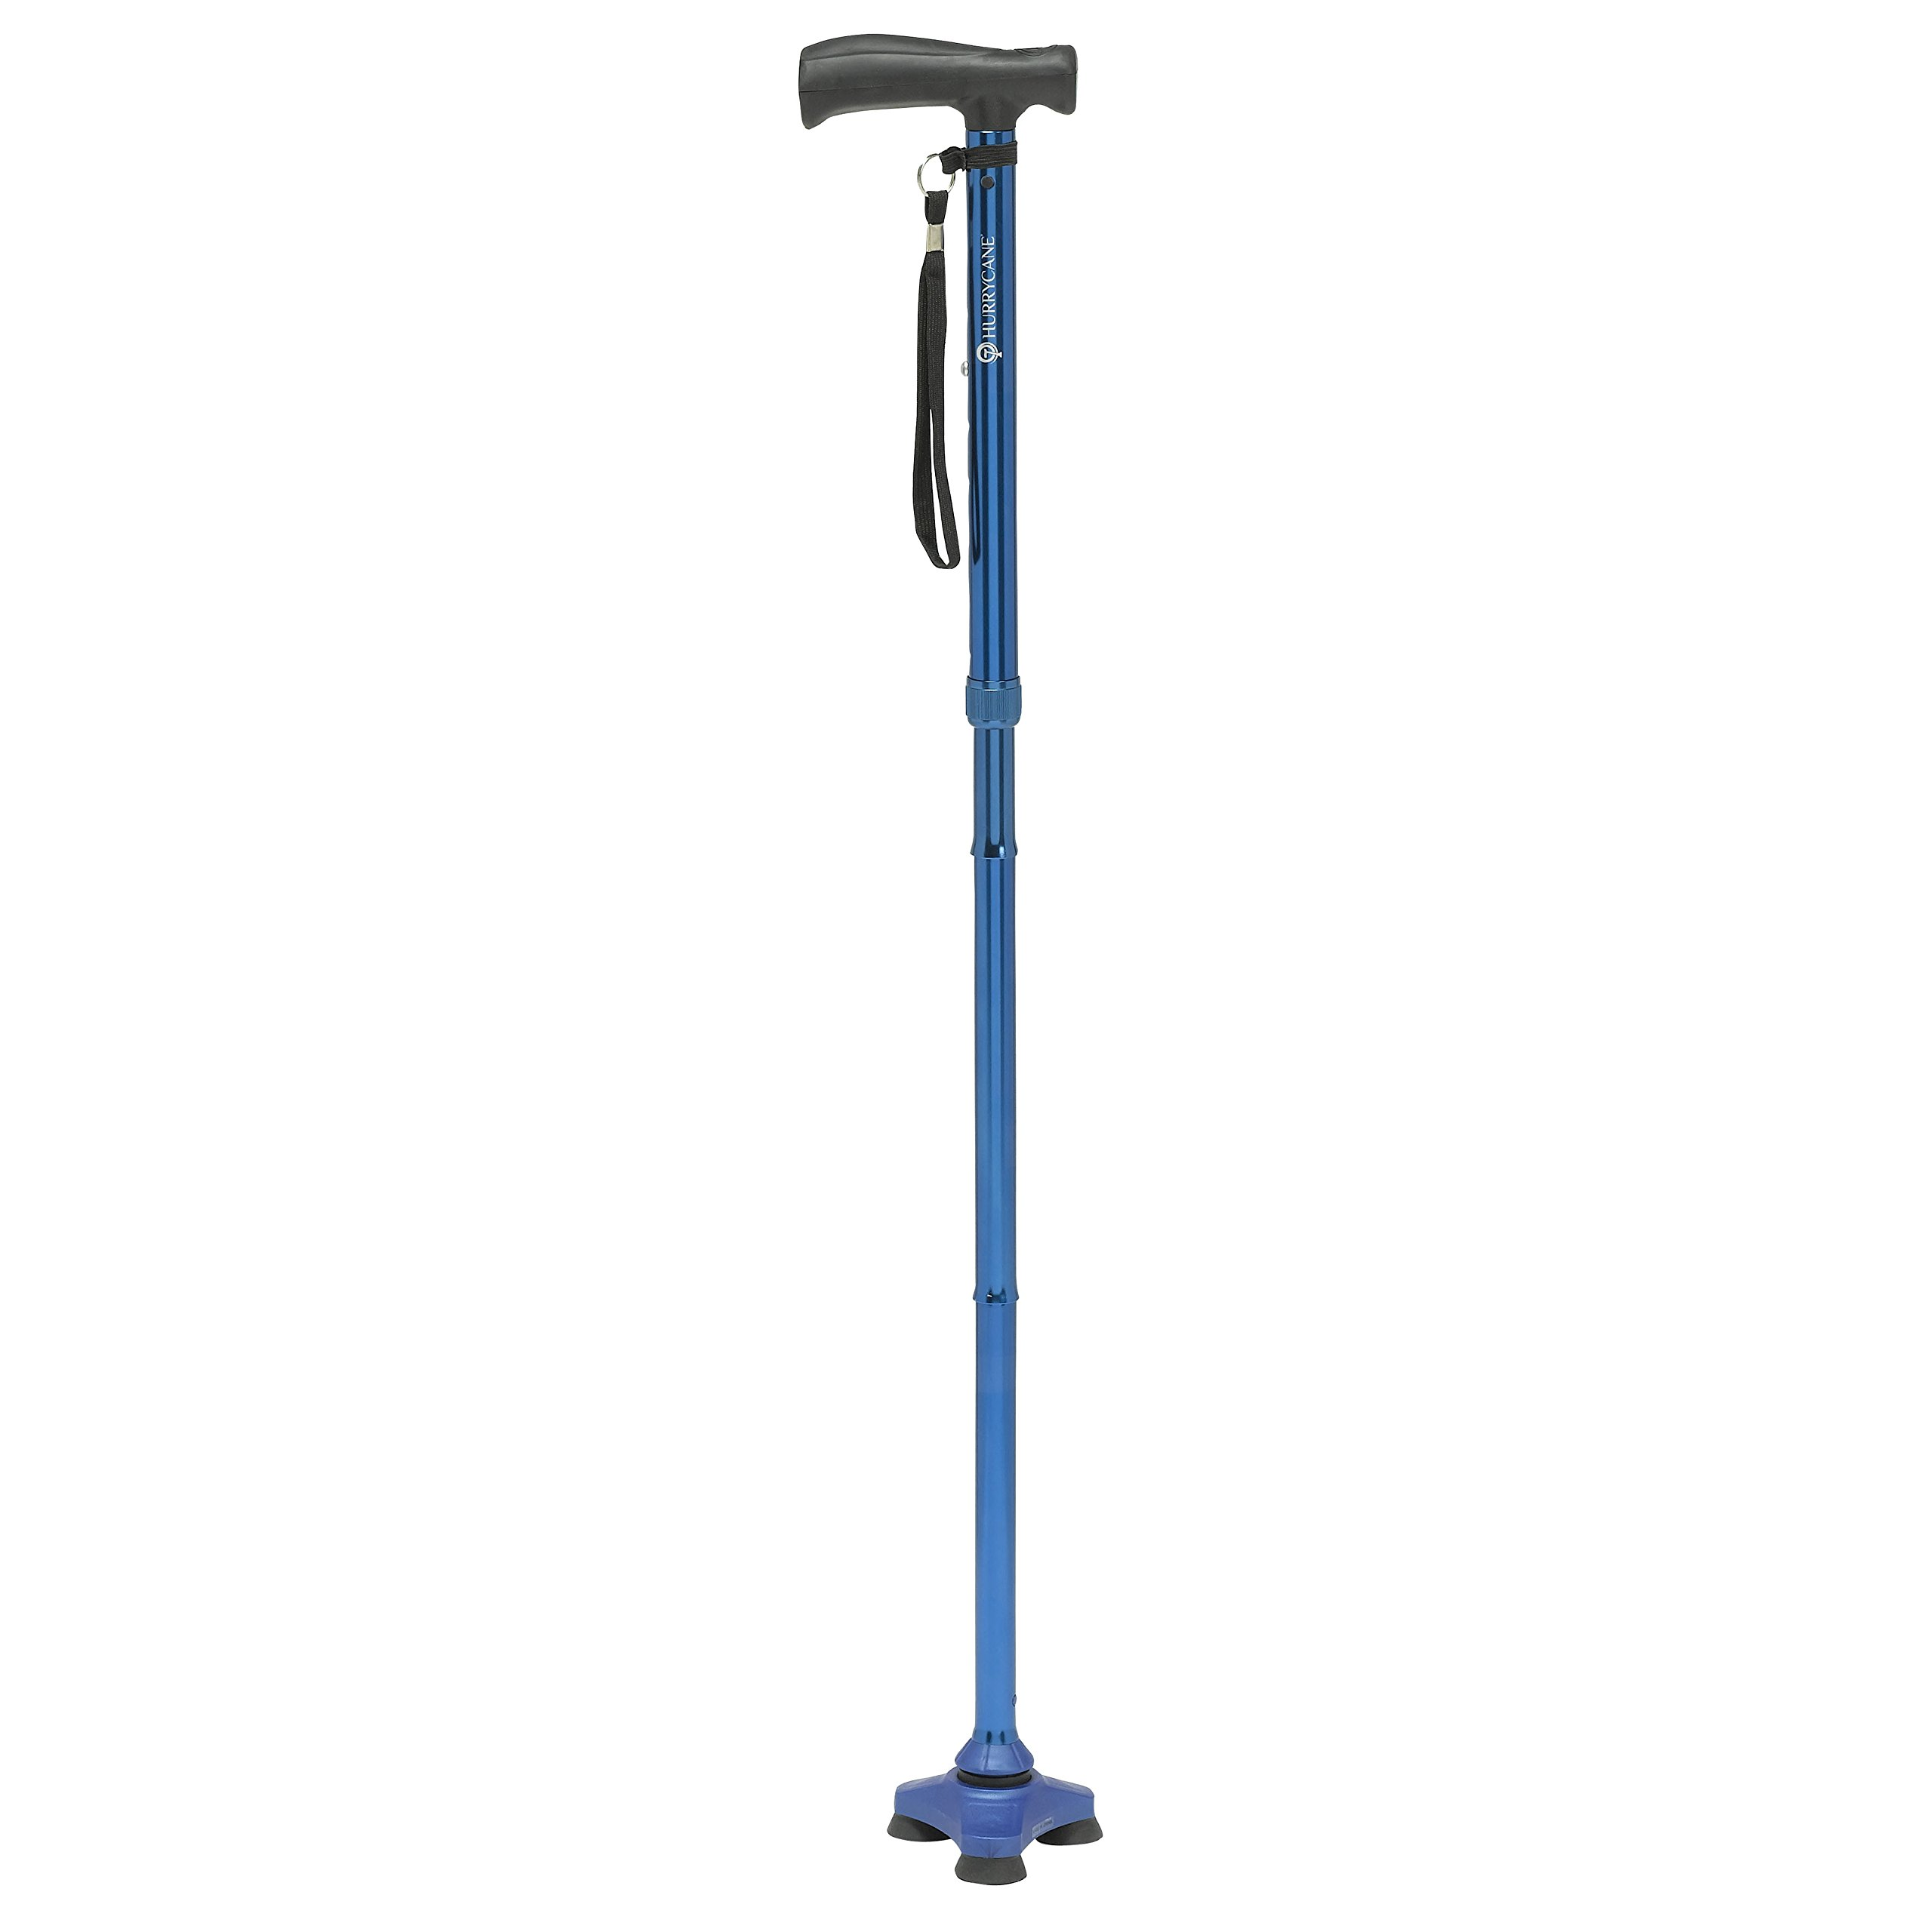 HurryCane Freedom Edition Folding Cane with T Handle, Trailblazer Blue